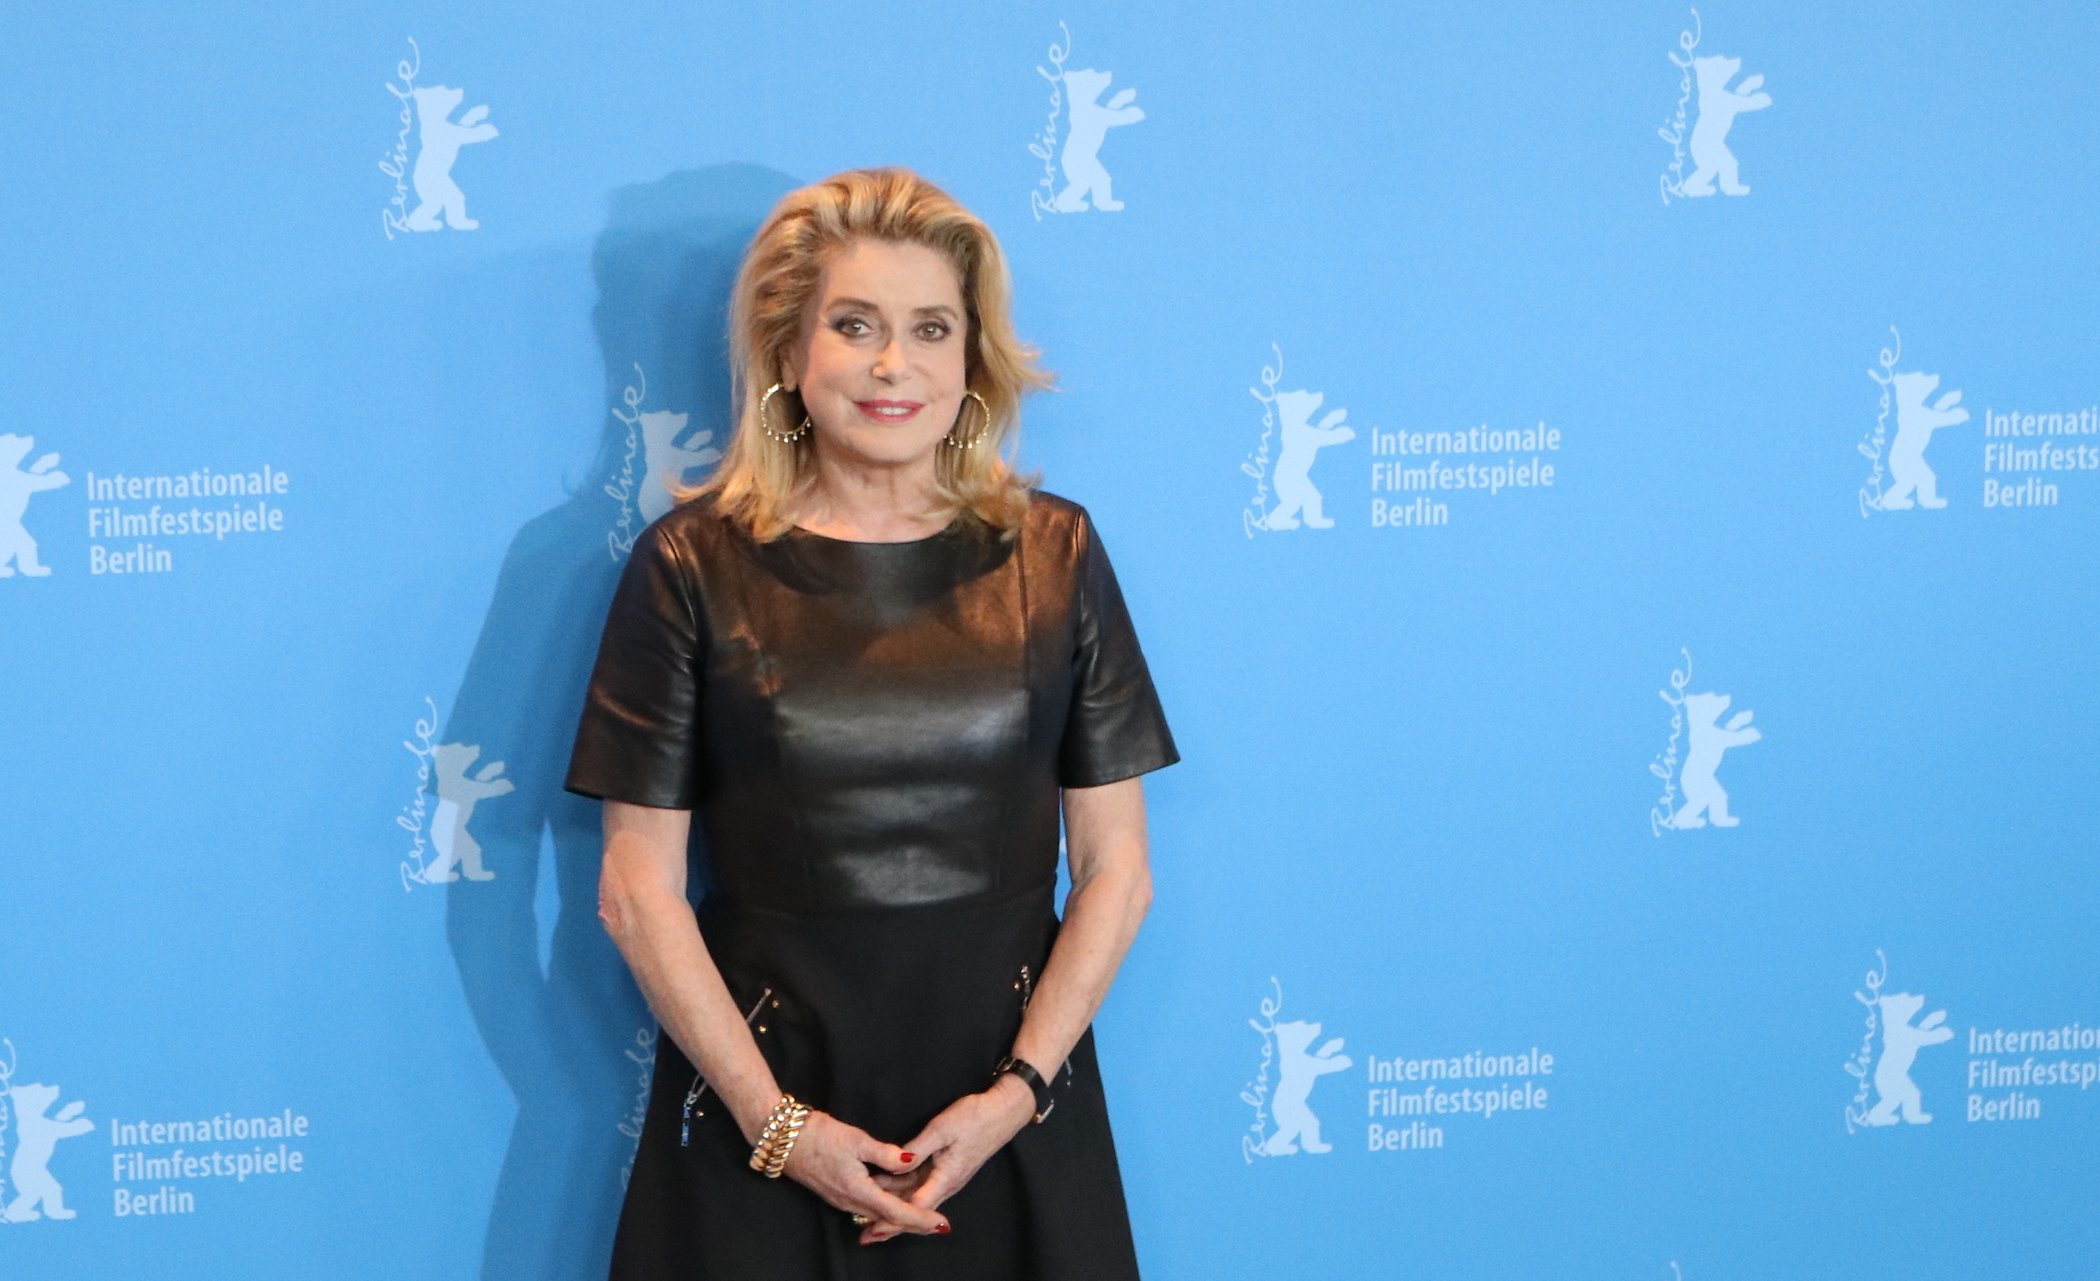 Berlino 2017: Catherine Deneuve al photocall di The Midwife